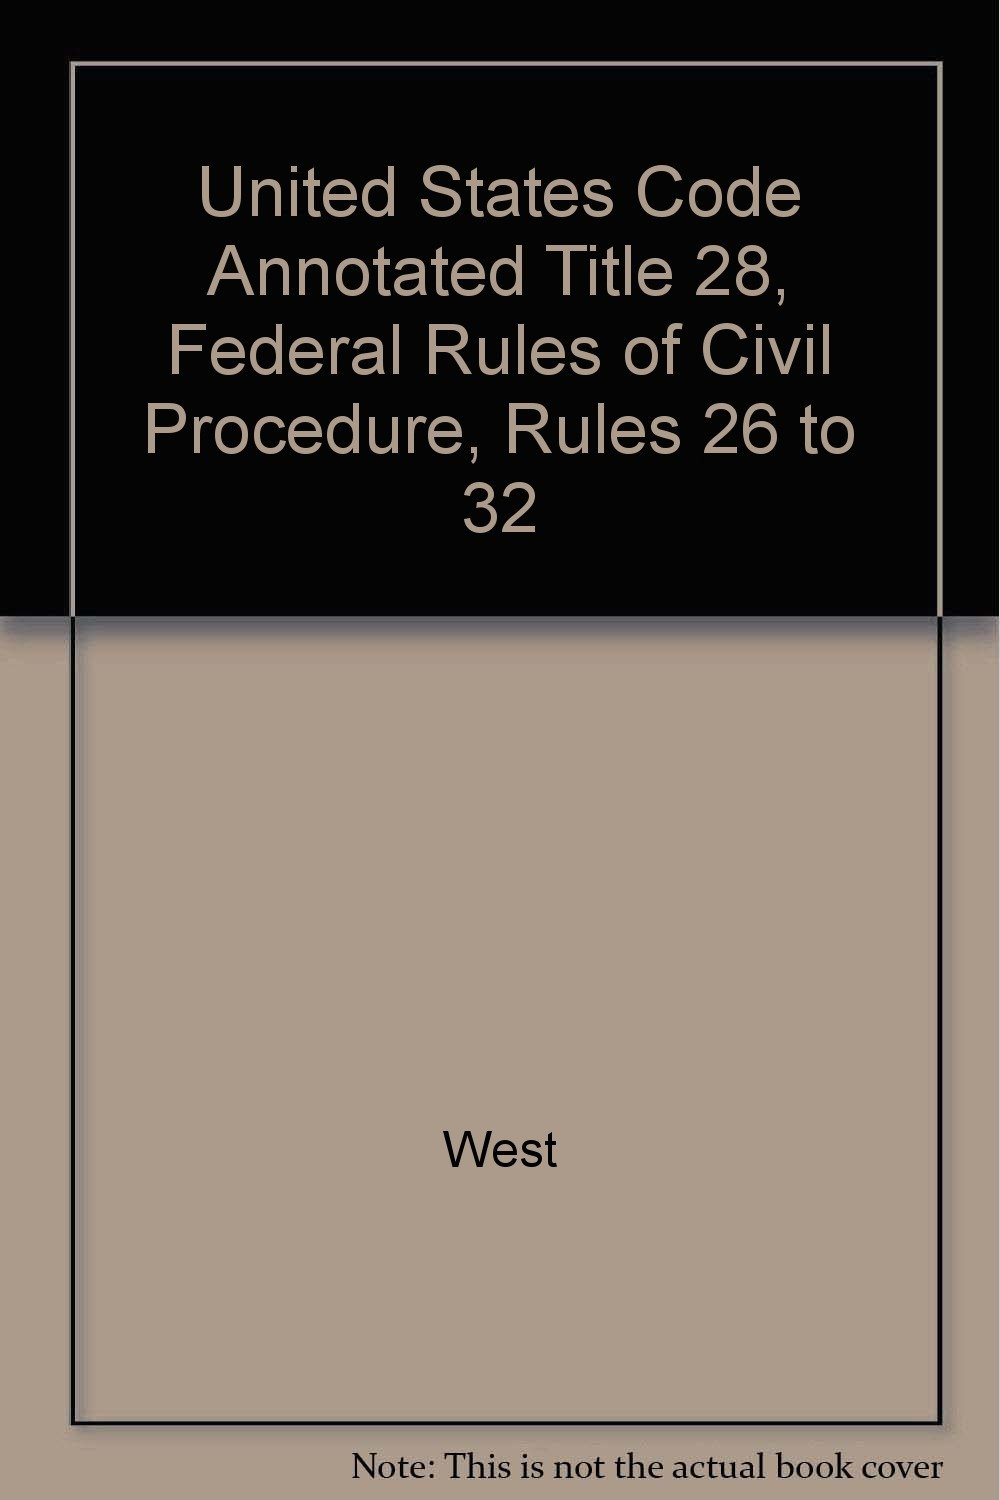 Title 32 of the United States Code